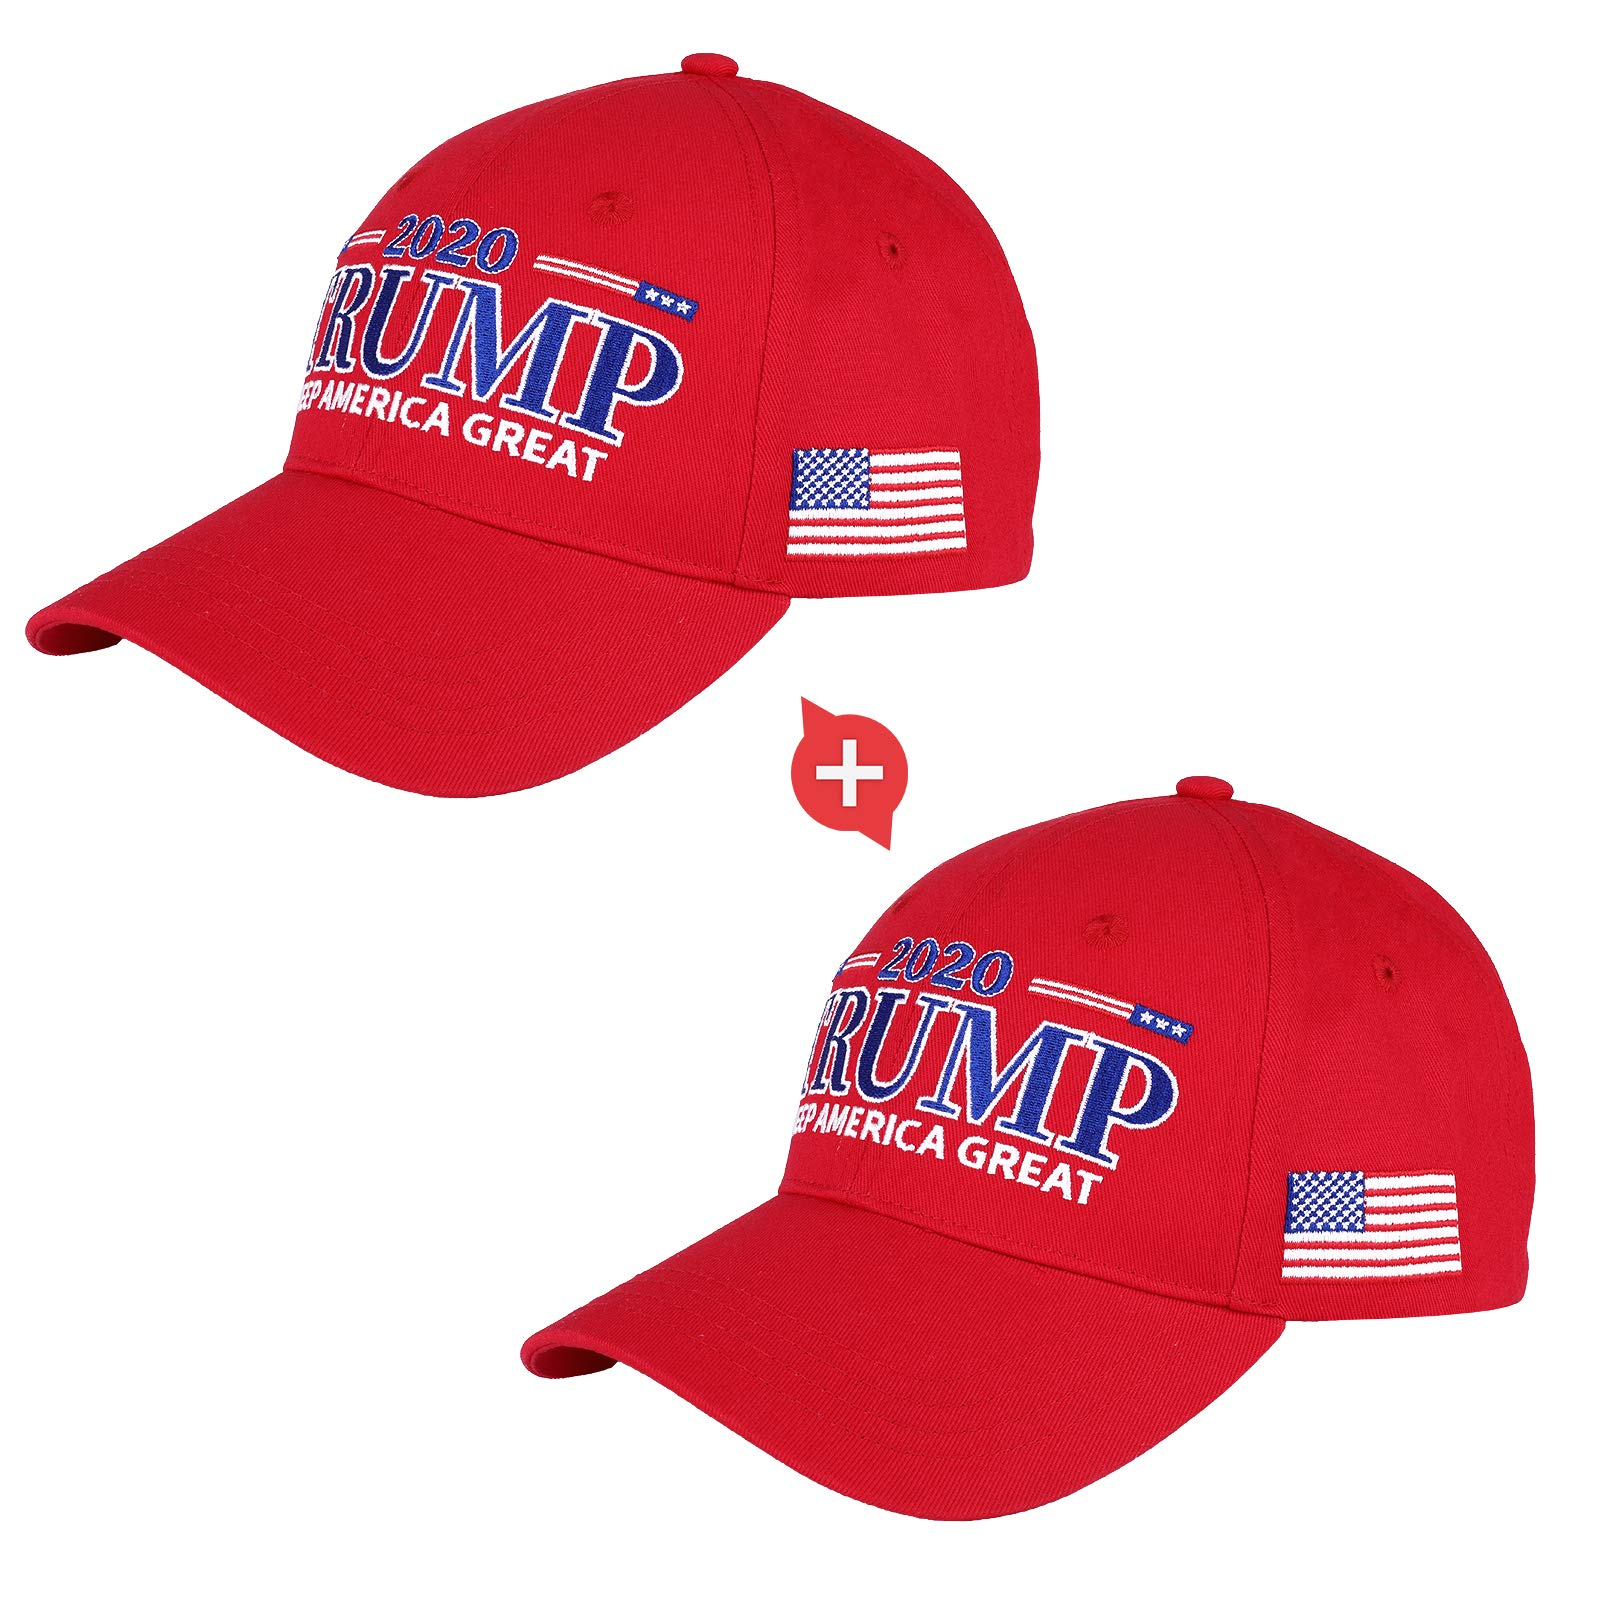 VPCOK Trump 2020 Hat 2 Packs Keep America Great Trump Hats for Men/Wowen, Trump Cap Adjustable Baseball Hat Red and Blue